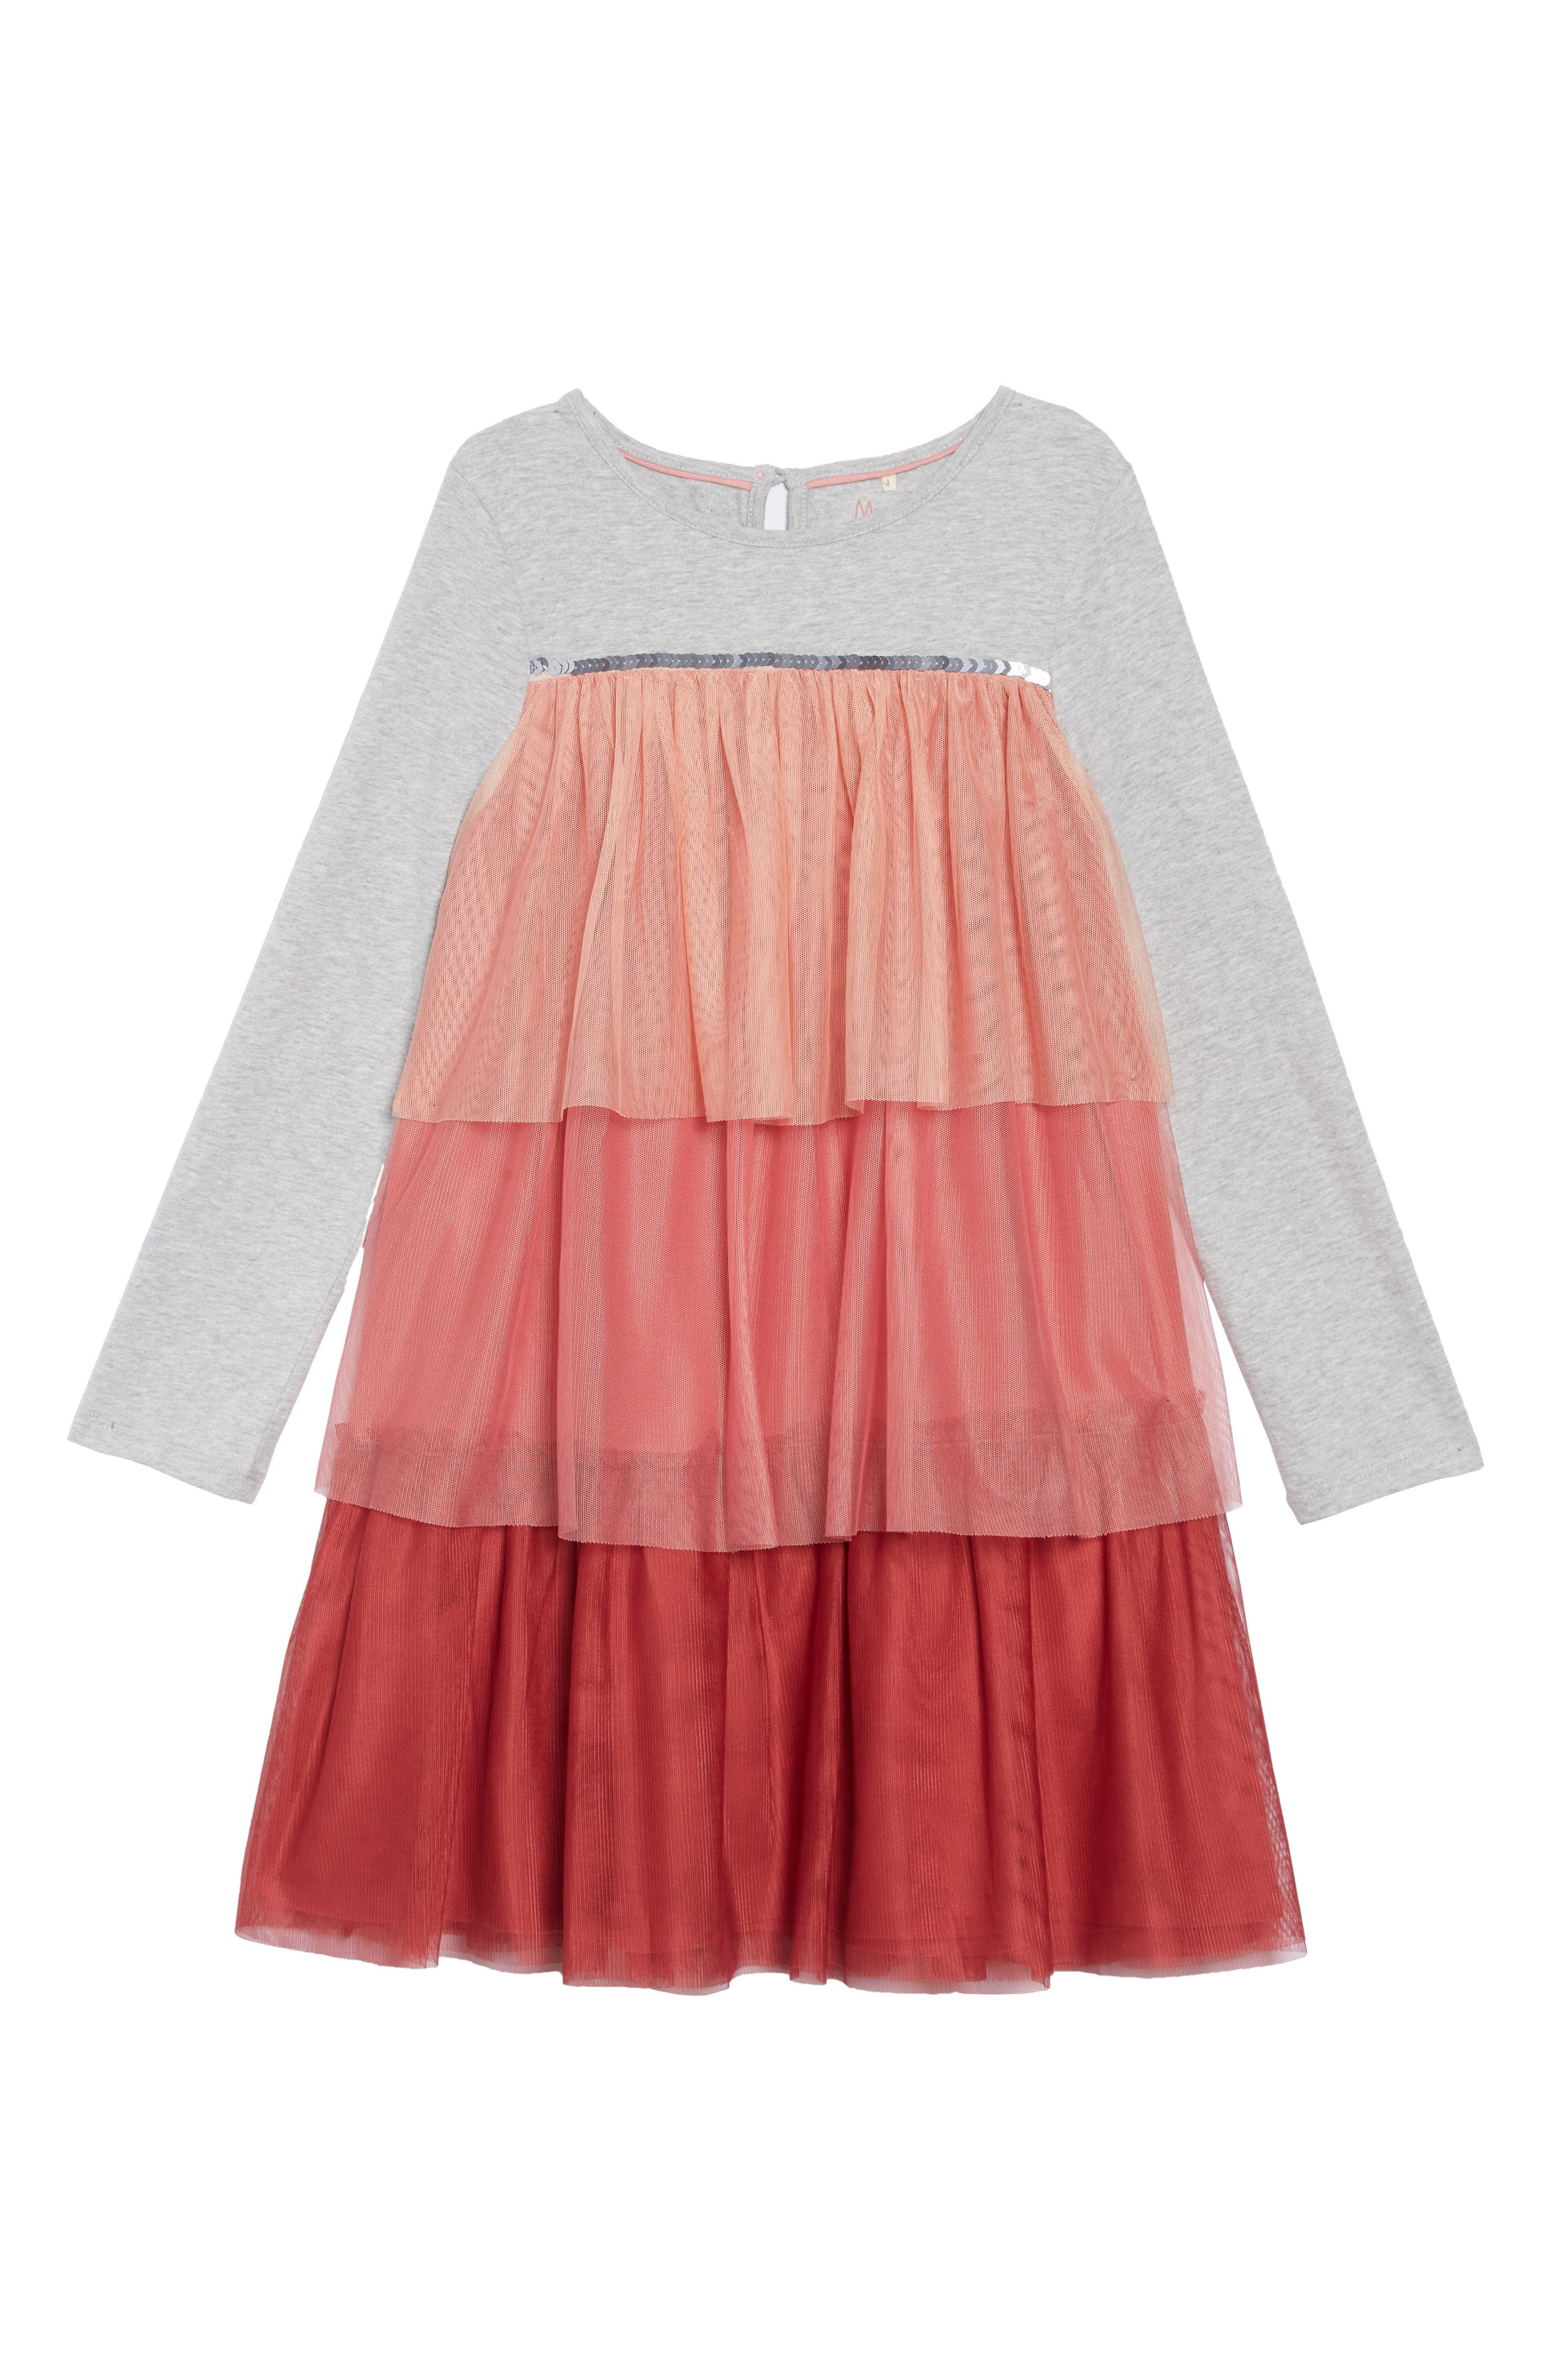 Jersey & Tulle Dress,                         Main,                         color, ROSE PINK OMBRE